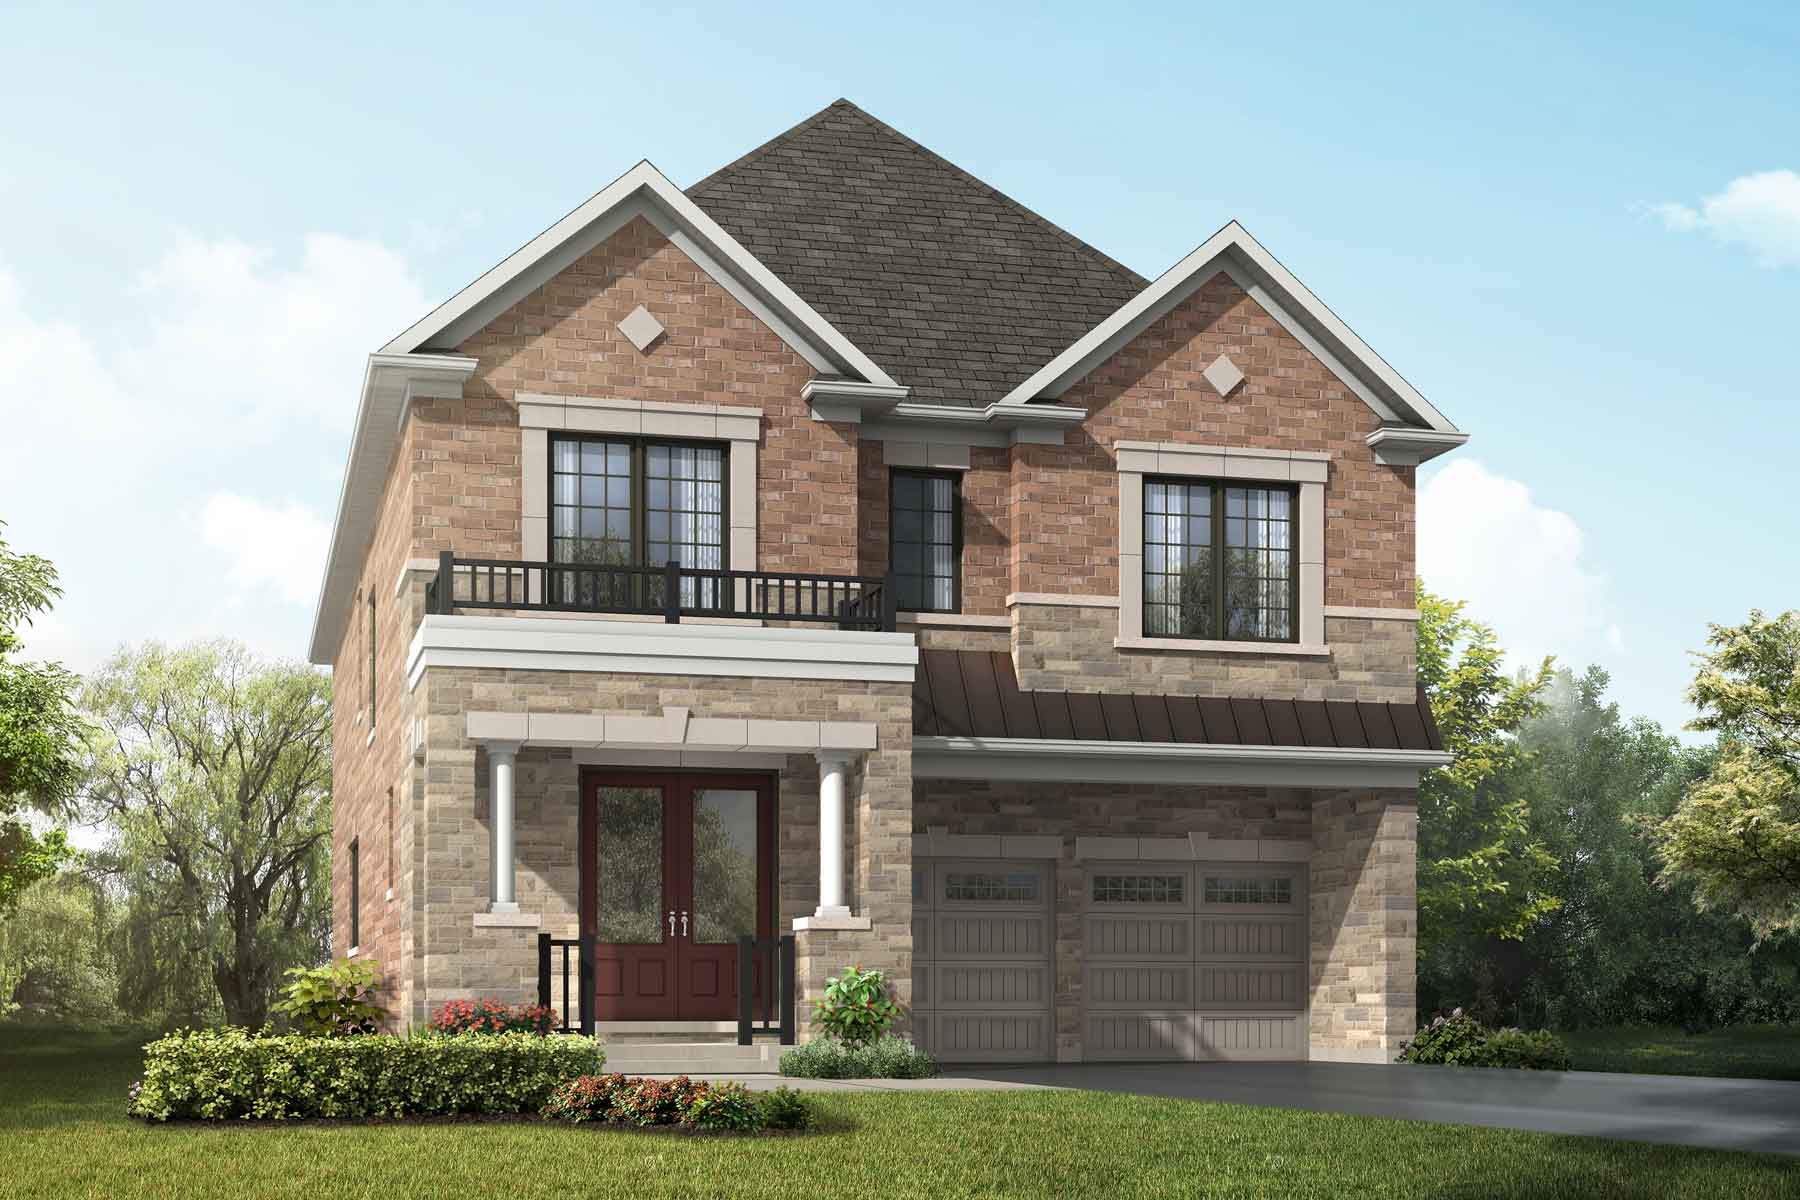 Violet Plan englishmanor_springwater_violet at Springwater in Markham Ontario by Mattamy Homes